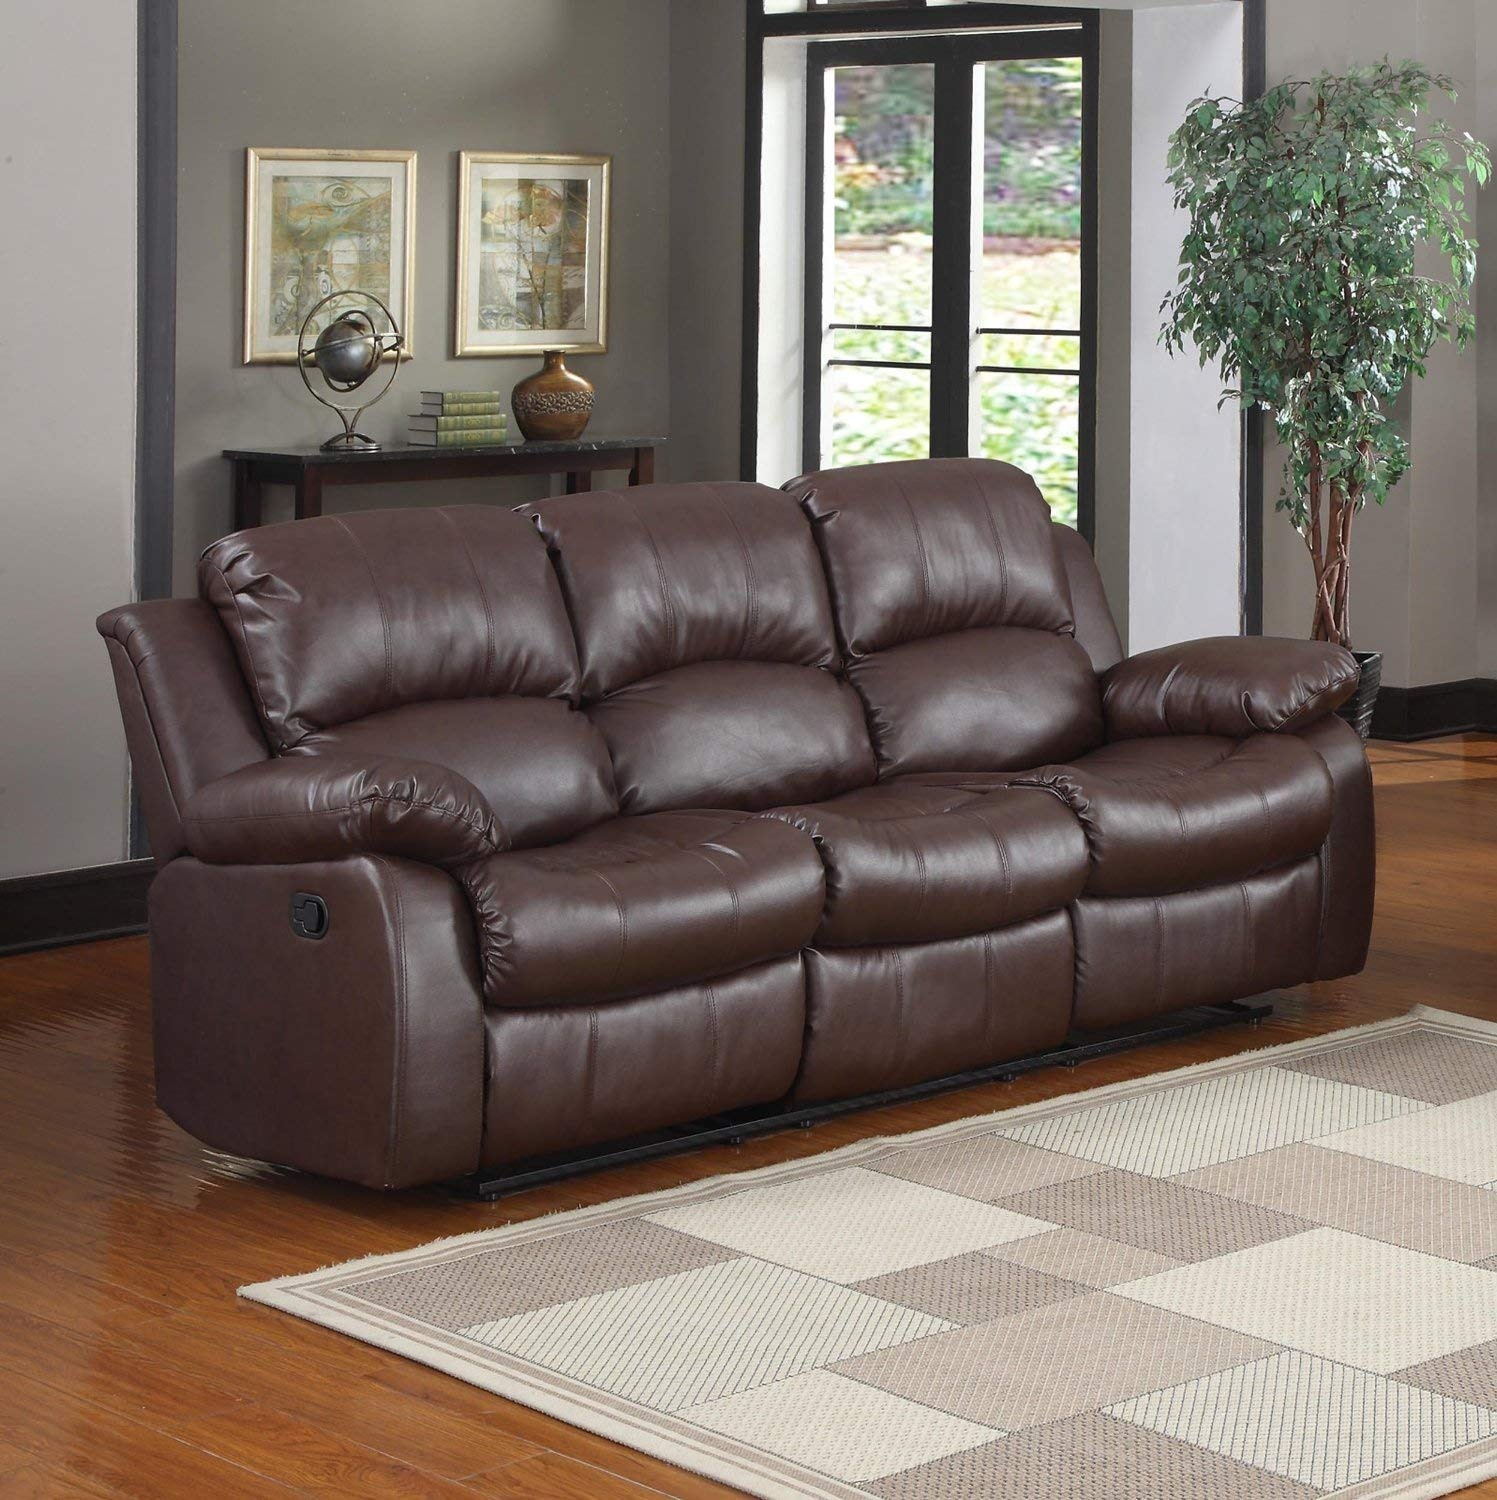 leather recliner sofa amazon.com: bonded leather double recliner sofa living room reclining couch CMHWVLX